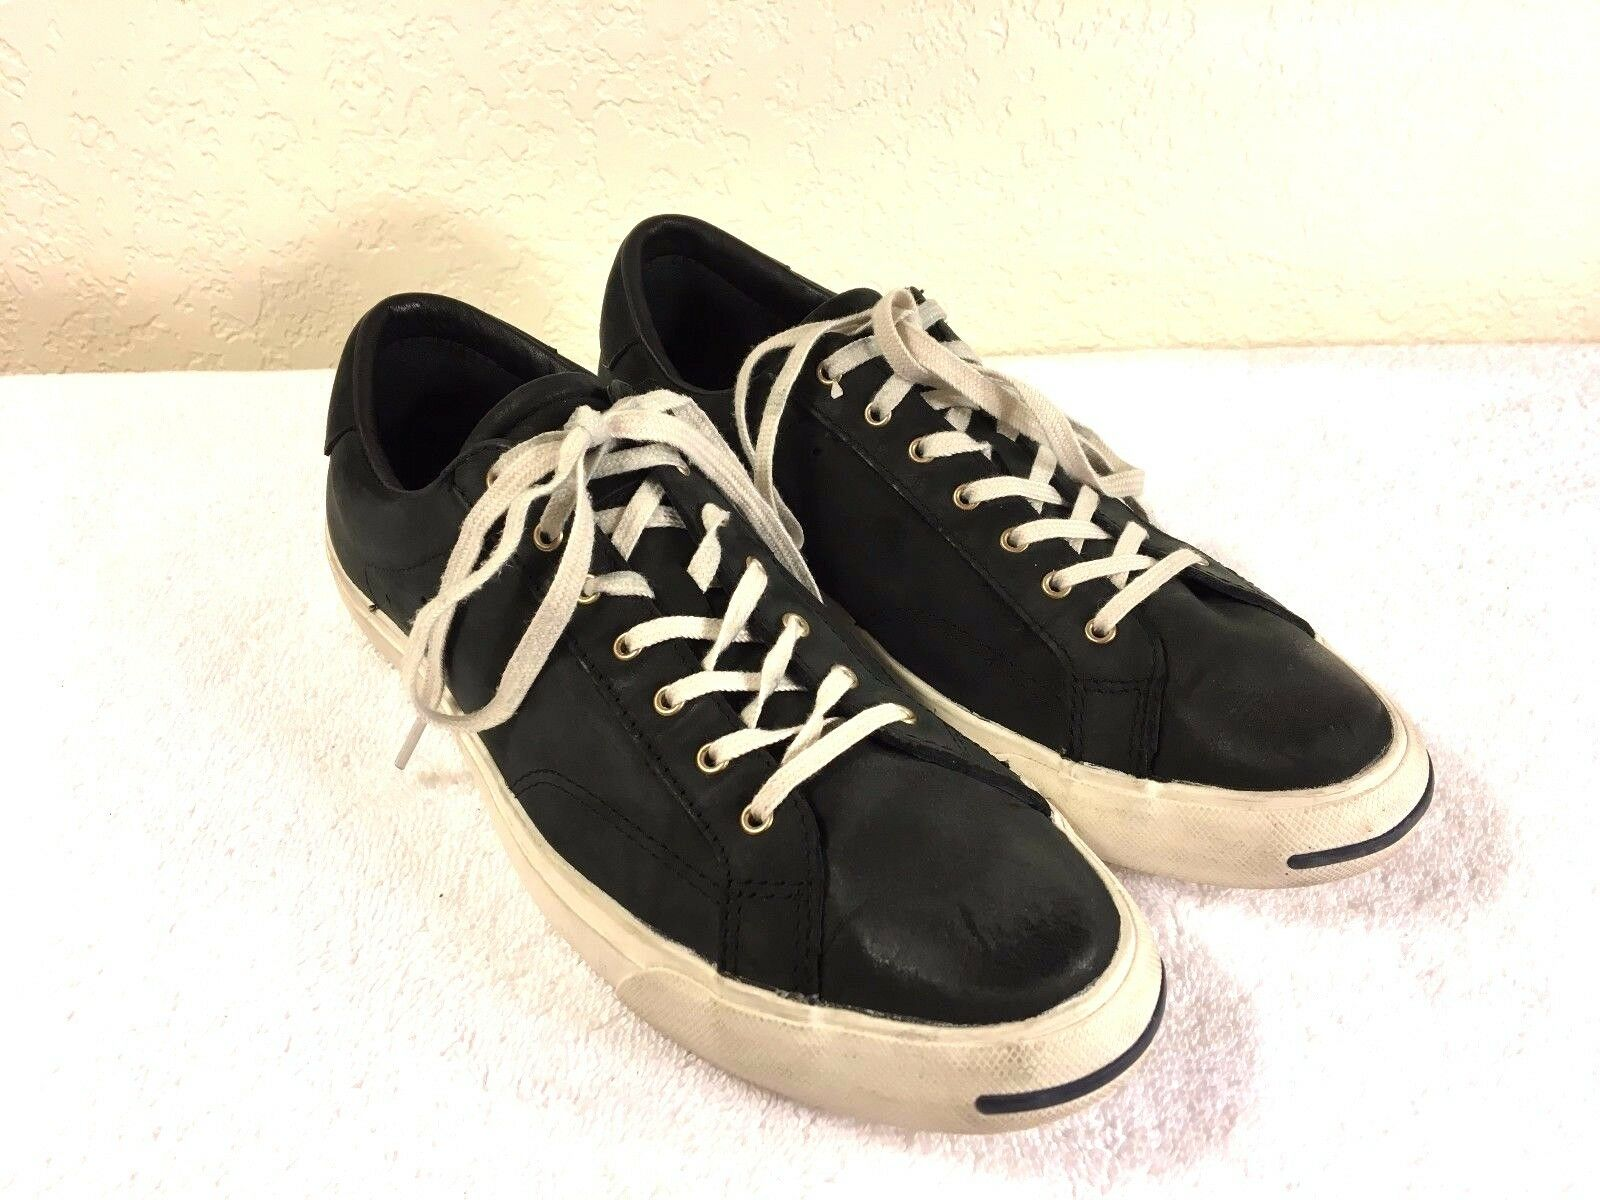 Converse Jack black Purcell black Jack leather sneaker shoes size men's 7.5 and womens 9 5417b0